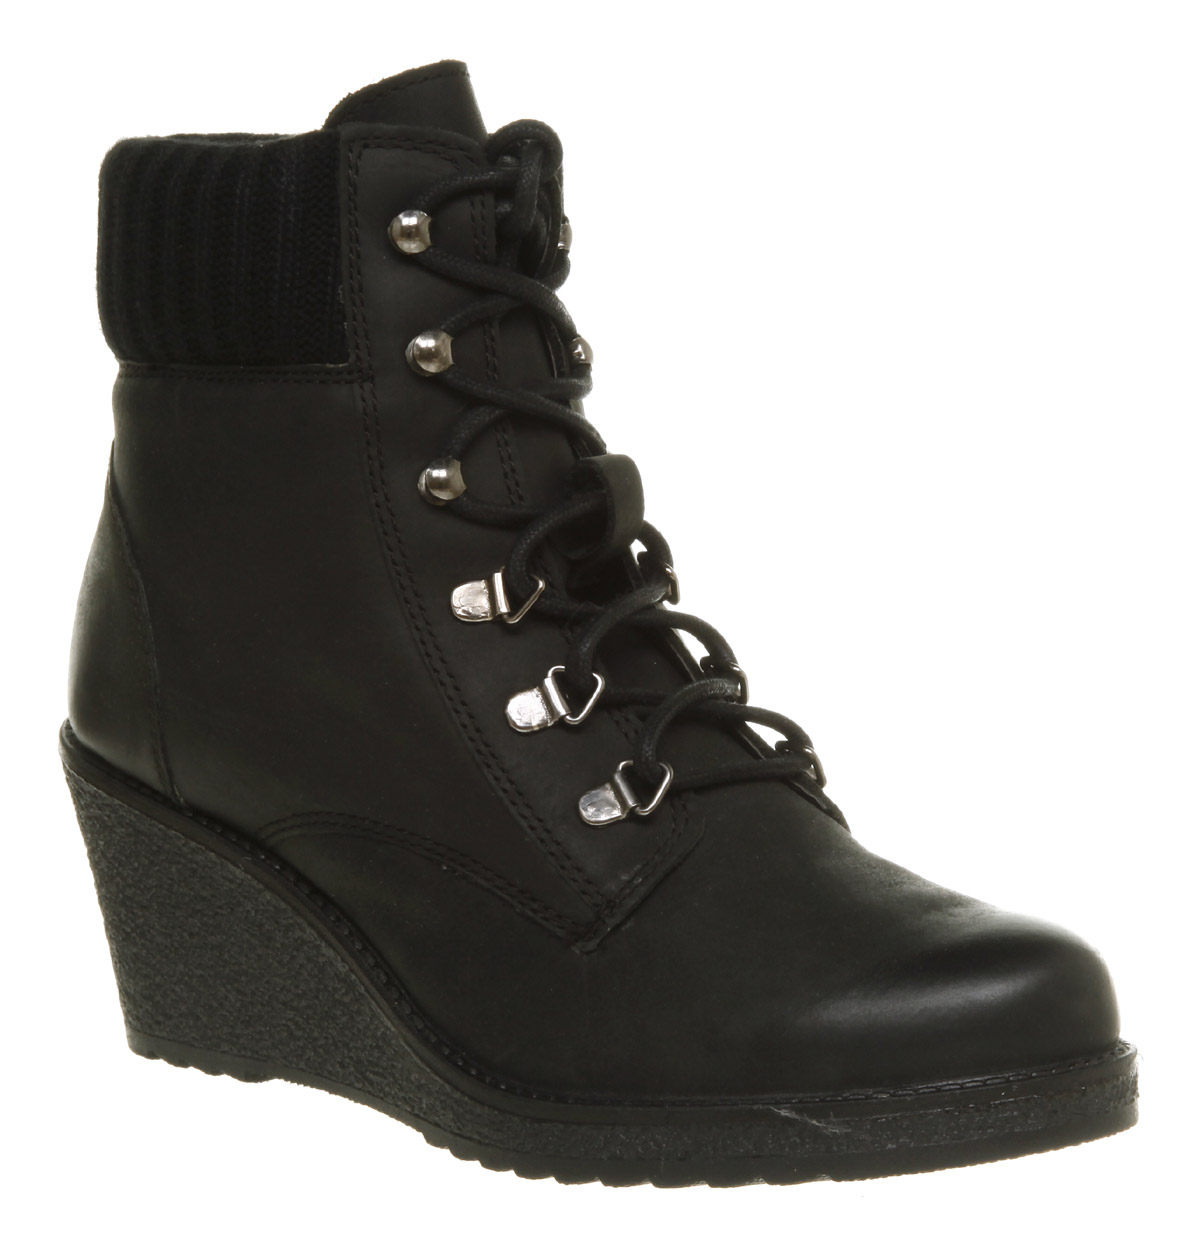 office nordic wedge boot black leather in black lyst